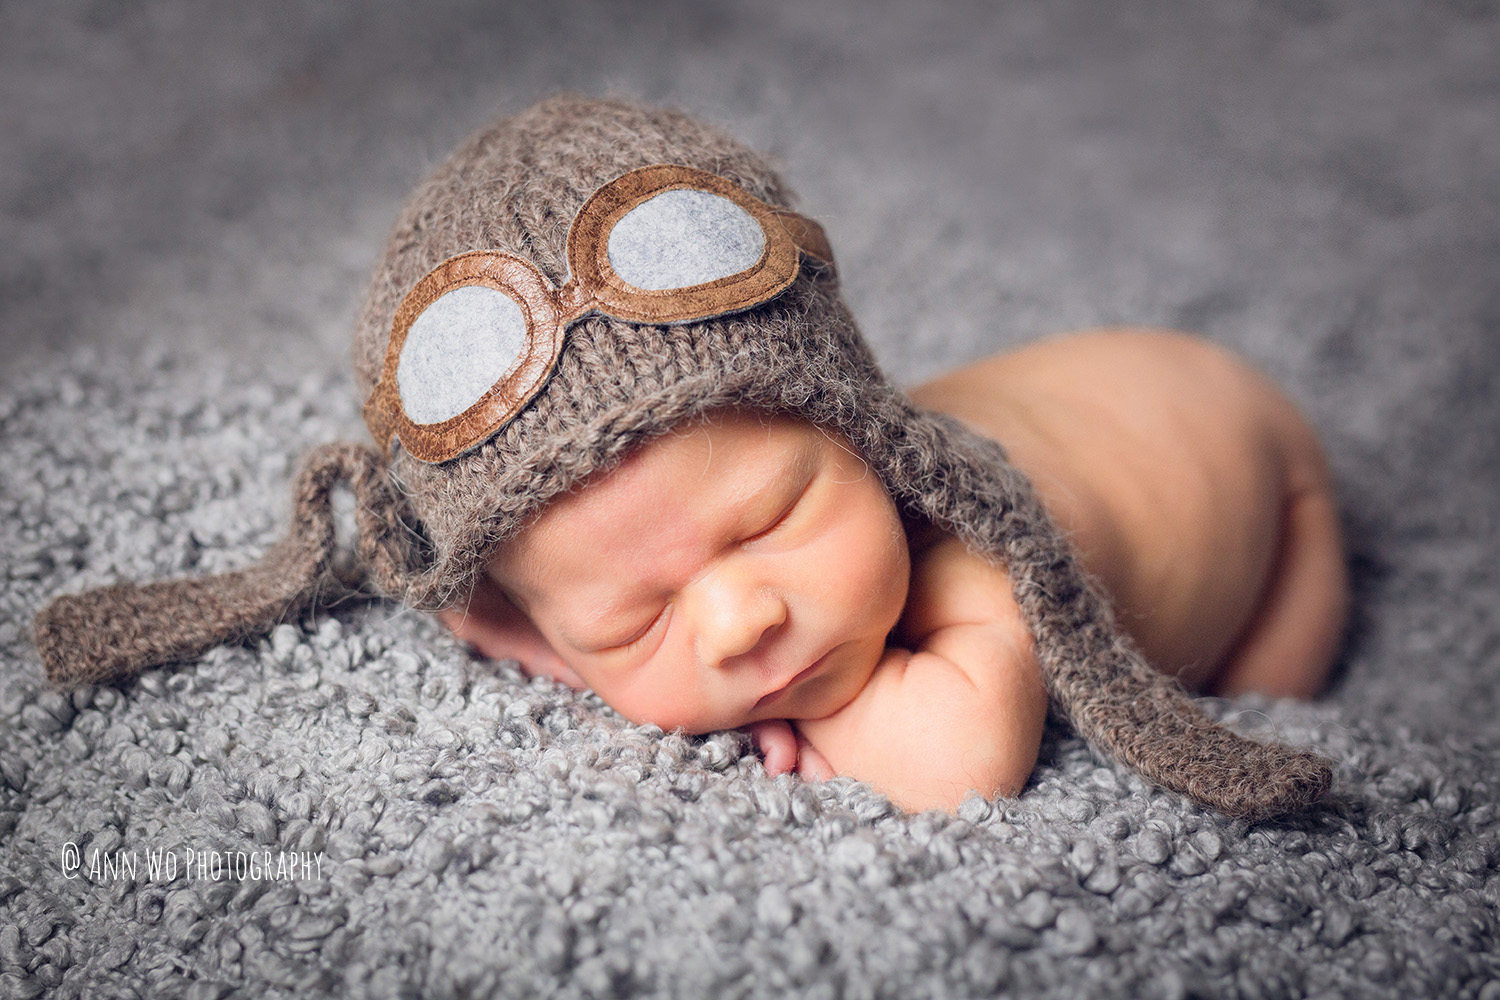 newborn-baby-photography-at-home-studio-set-up-Ann-Wo-London-bulldog-07.JPG